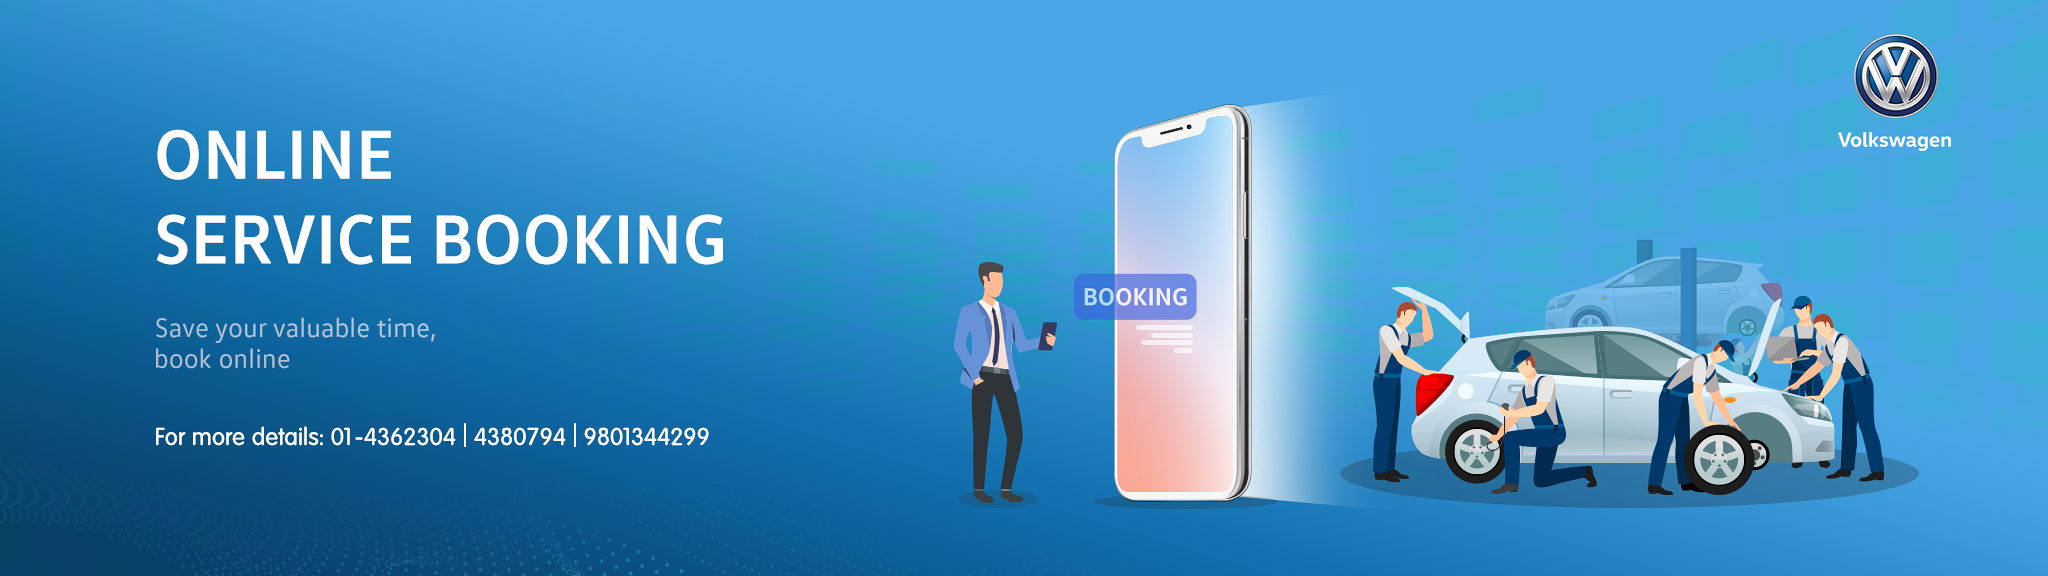 Online Service Booking